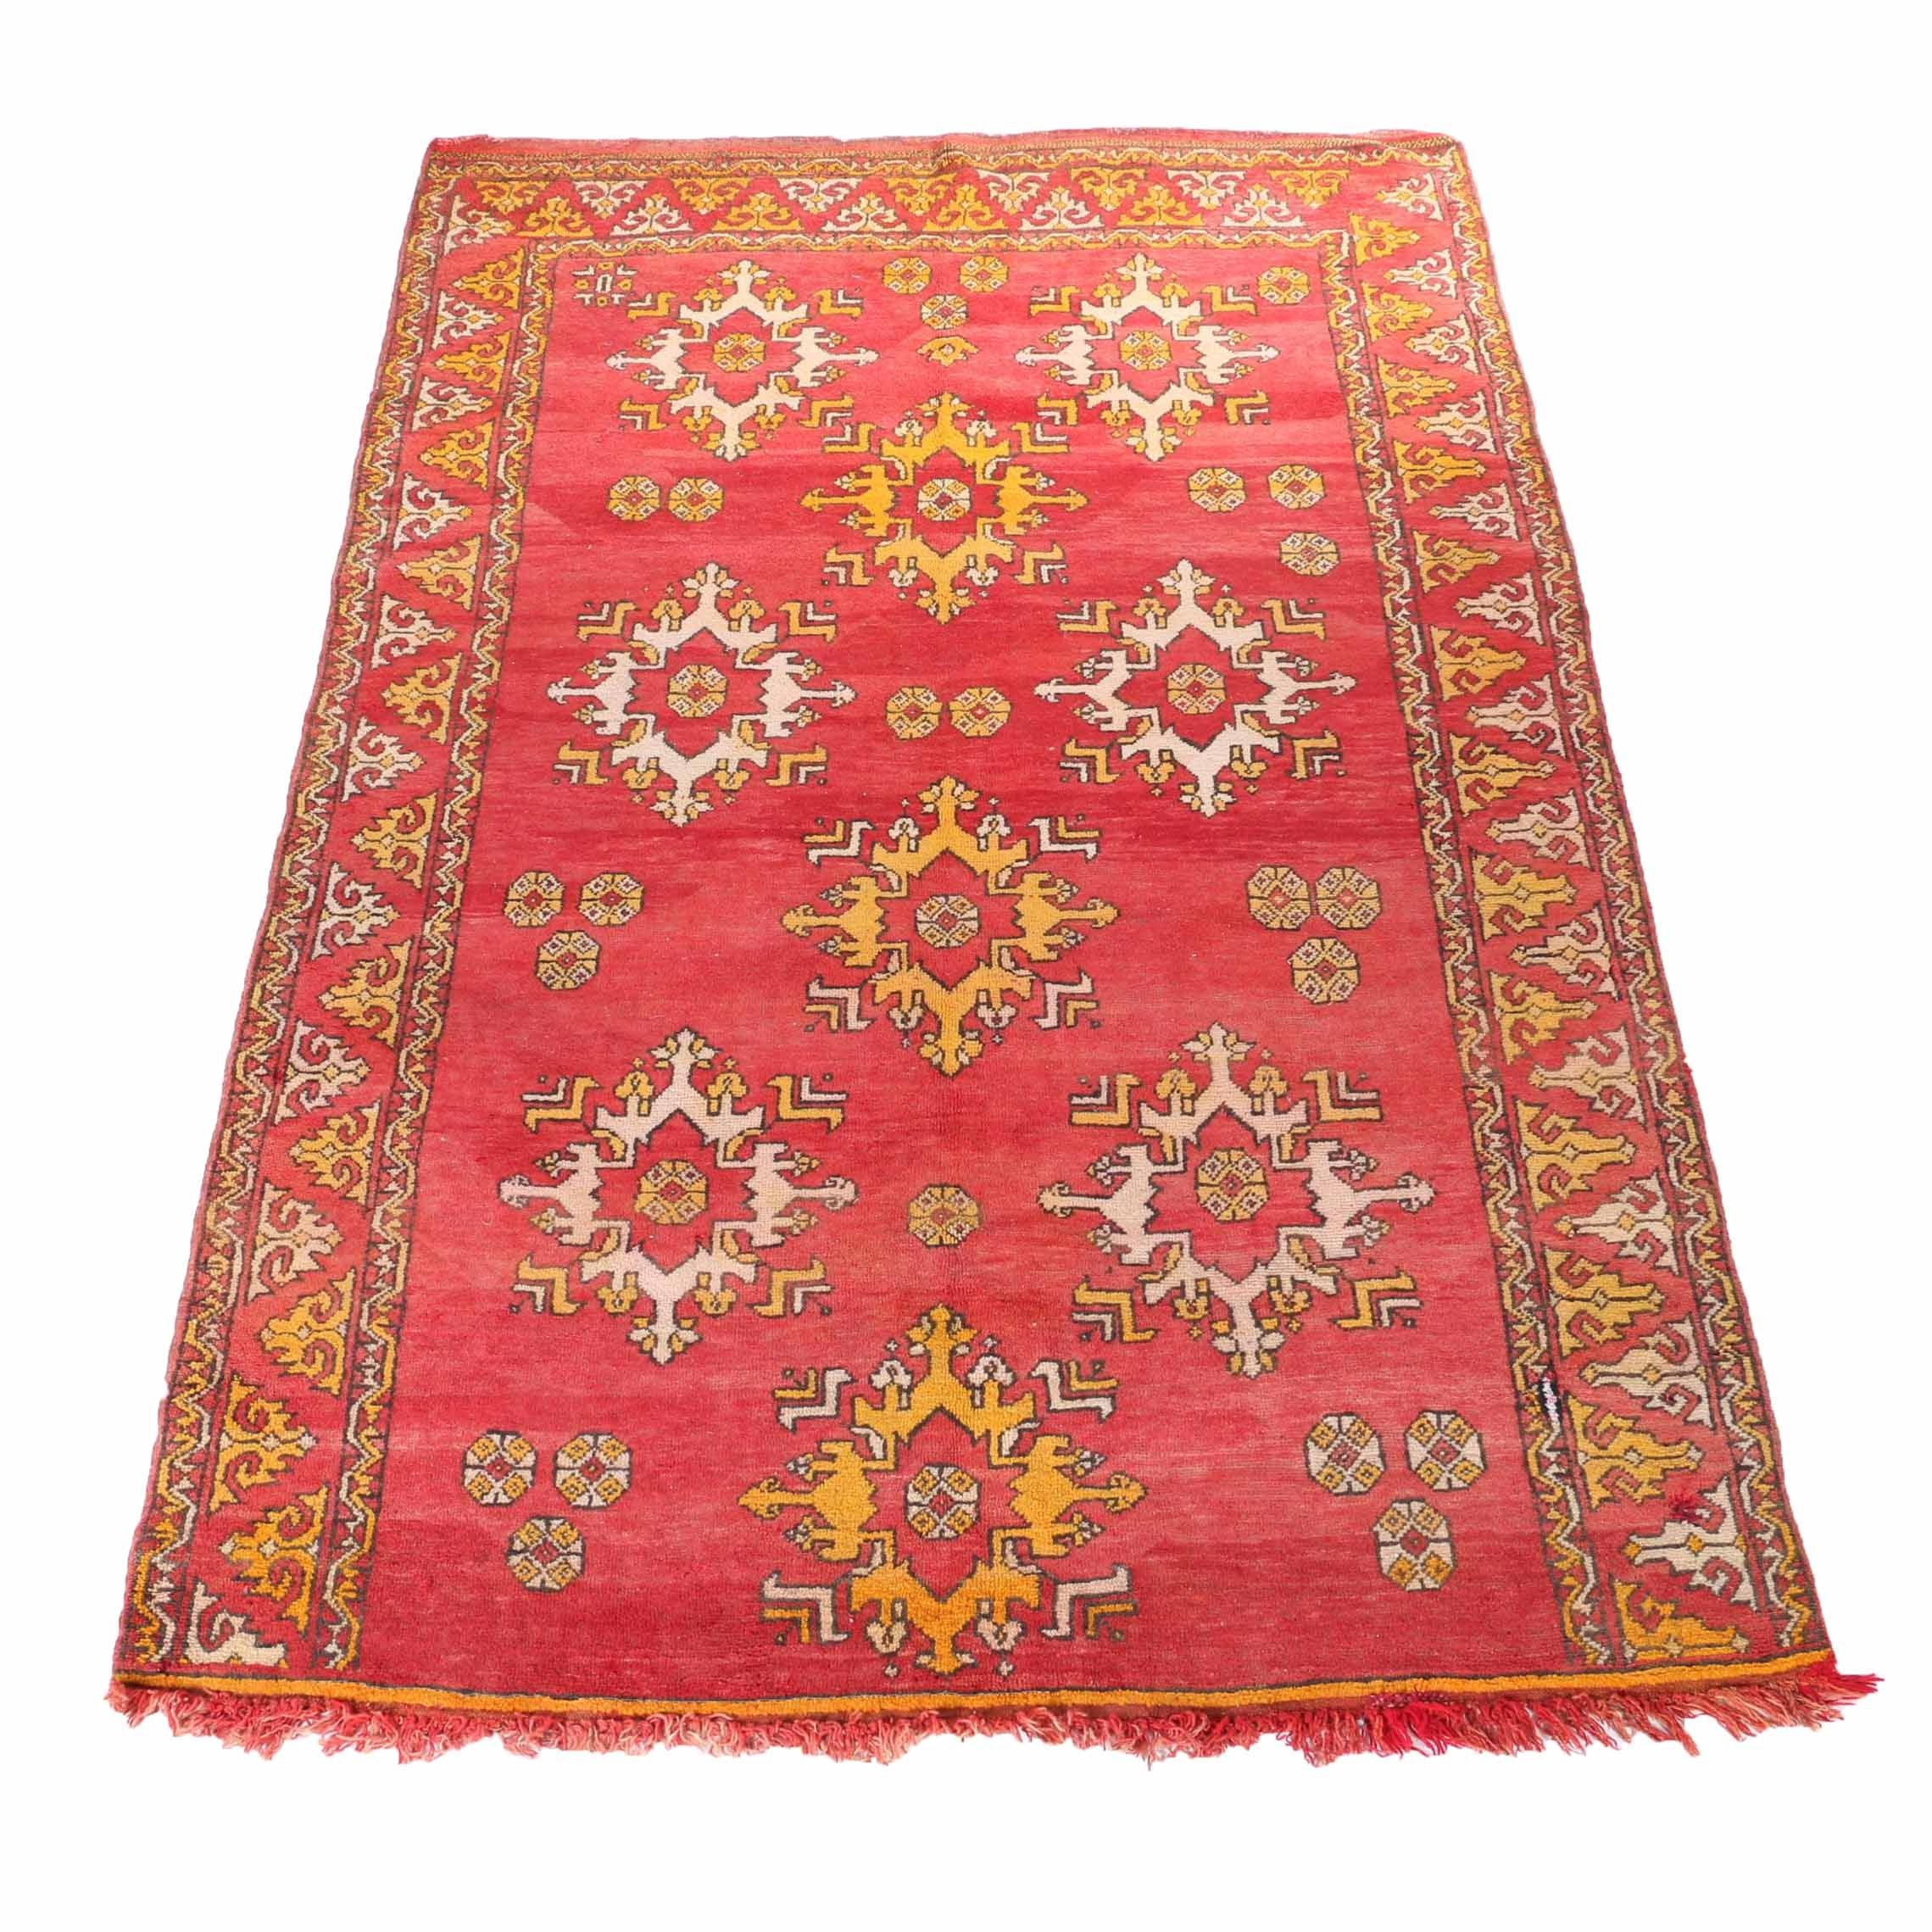 Hand-Knotted Turkish Oushak Area Rug in Scarlet